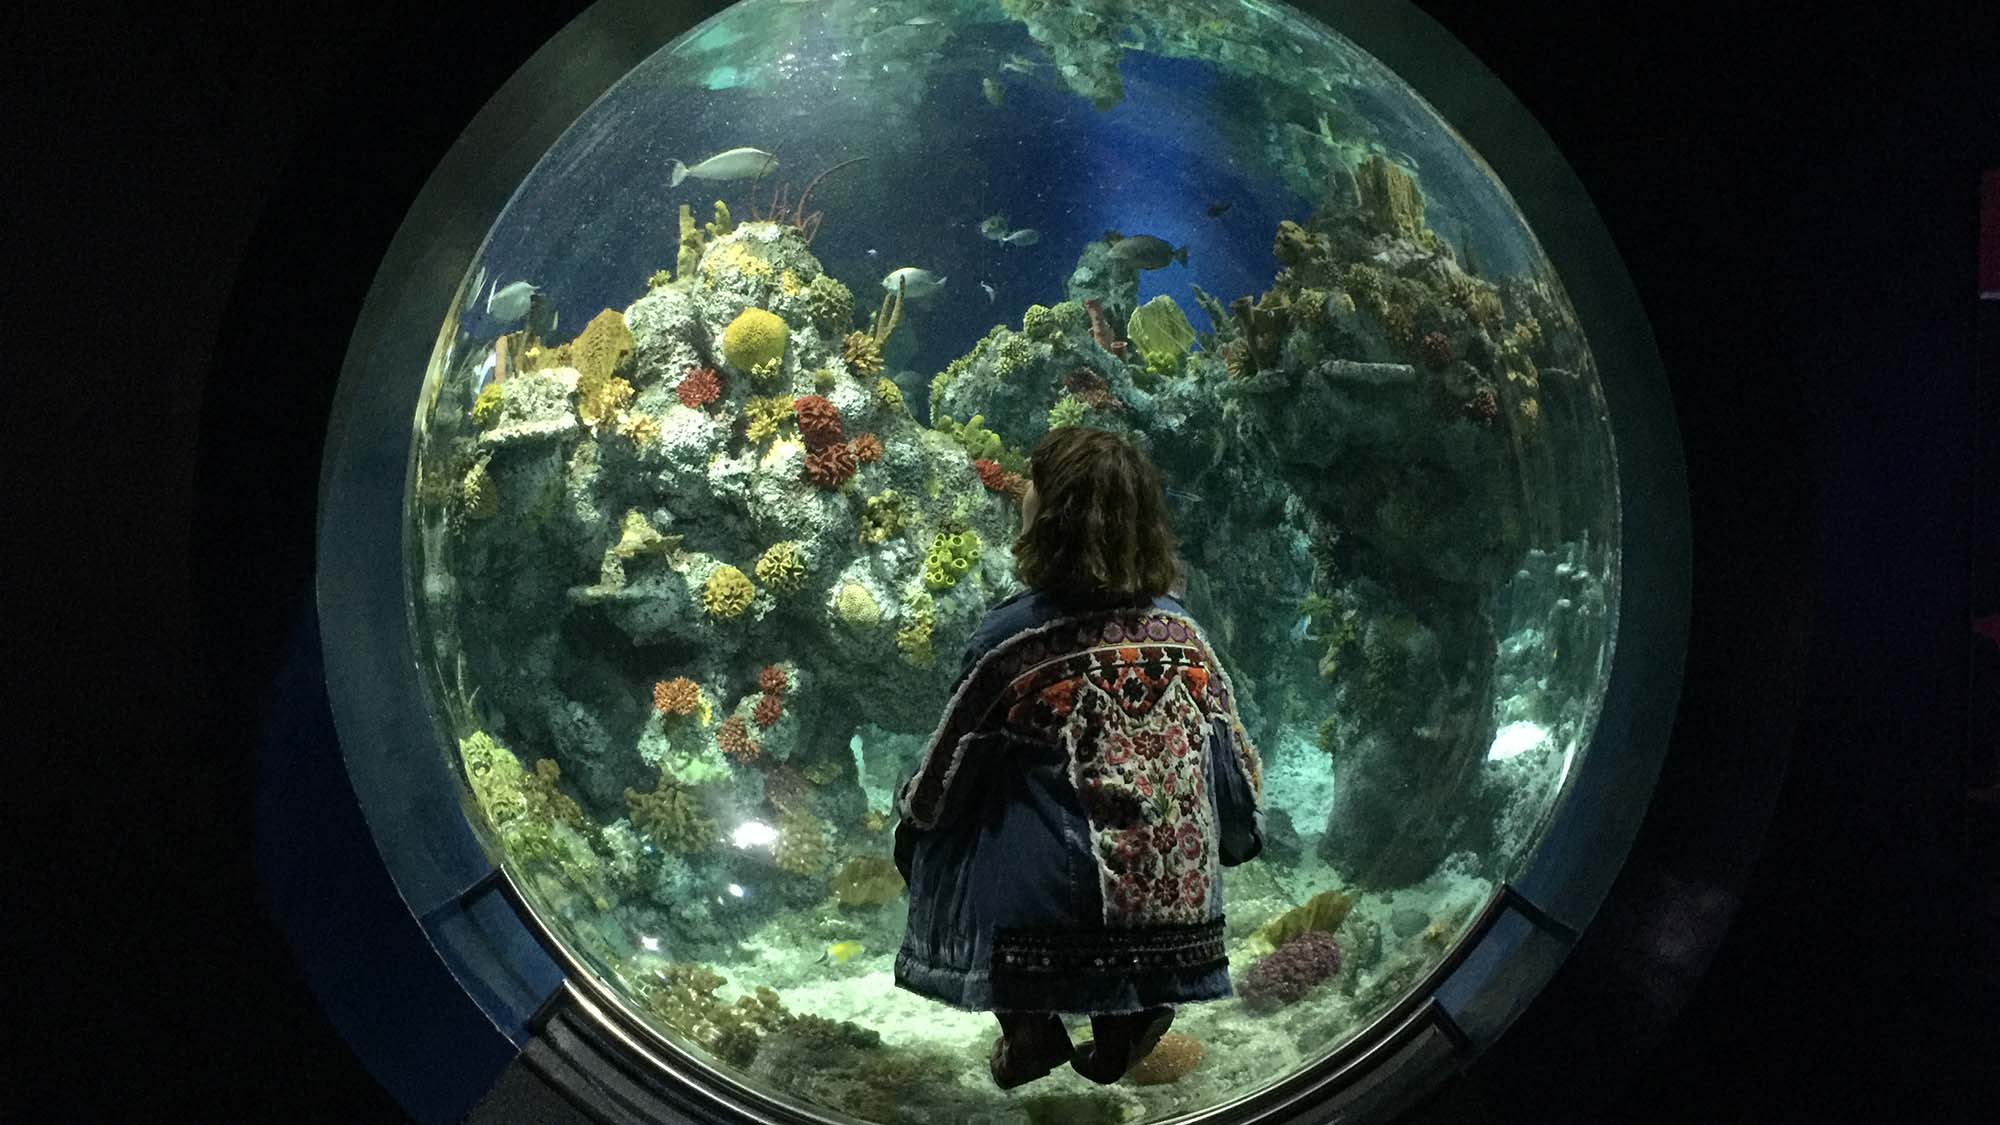 Things to do in Bristol - Aquarium